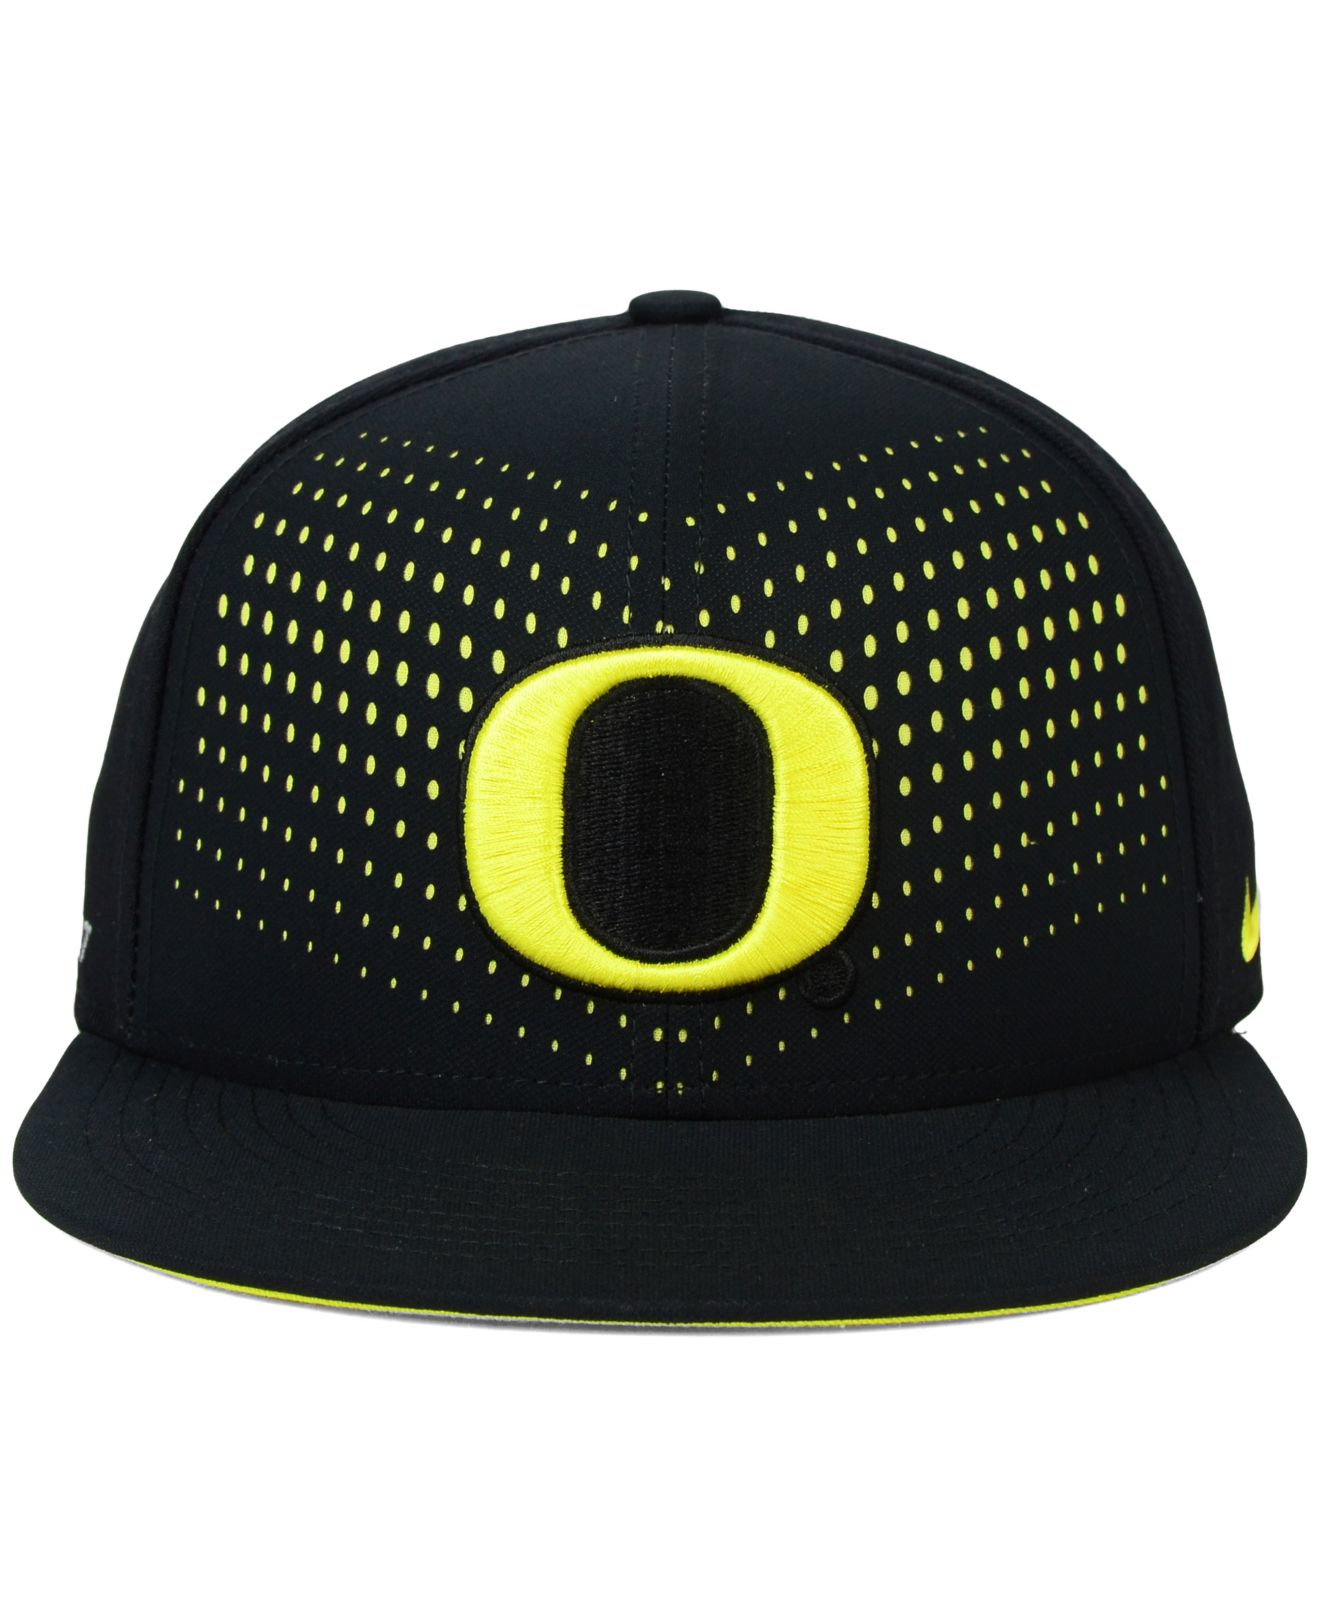 ... vapor performance fitted hat 1447a e71d2  best price lyst nike oregon  ducks true seasonal snapback cap in black for men 68b75 0f325 f6ff1a81c